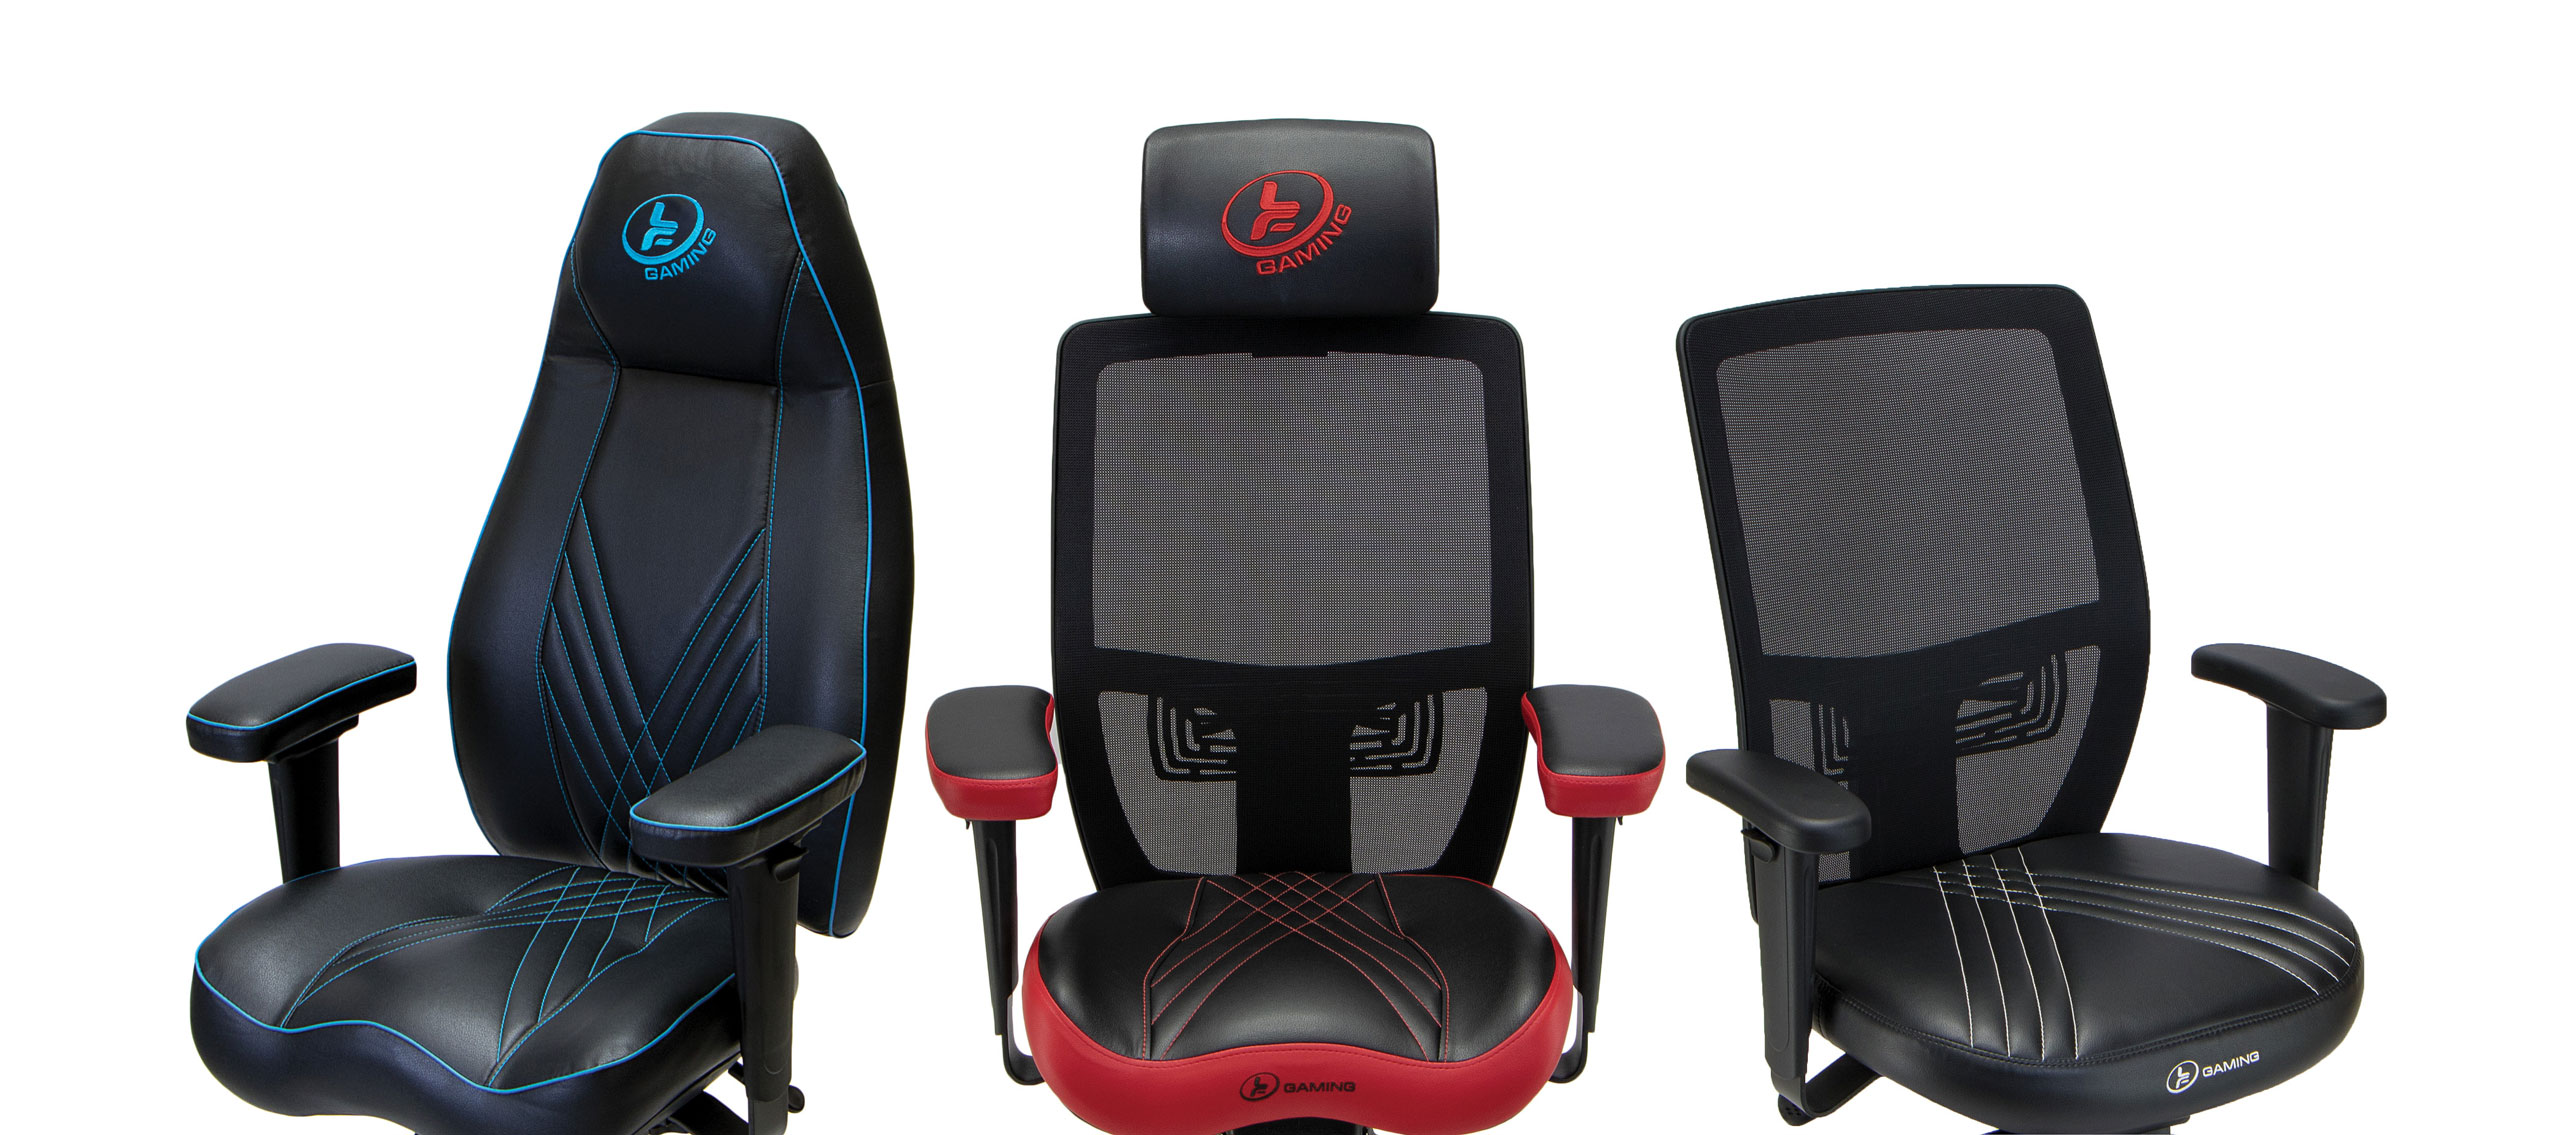 Gamers Chairs Lf A Chair With Comfort And Style Lf Gaming Chairs At E3